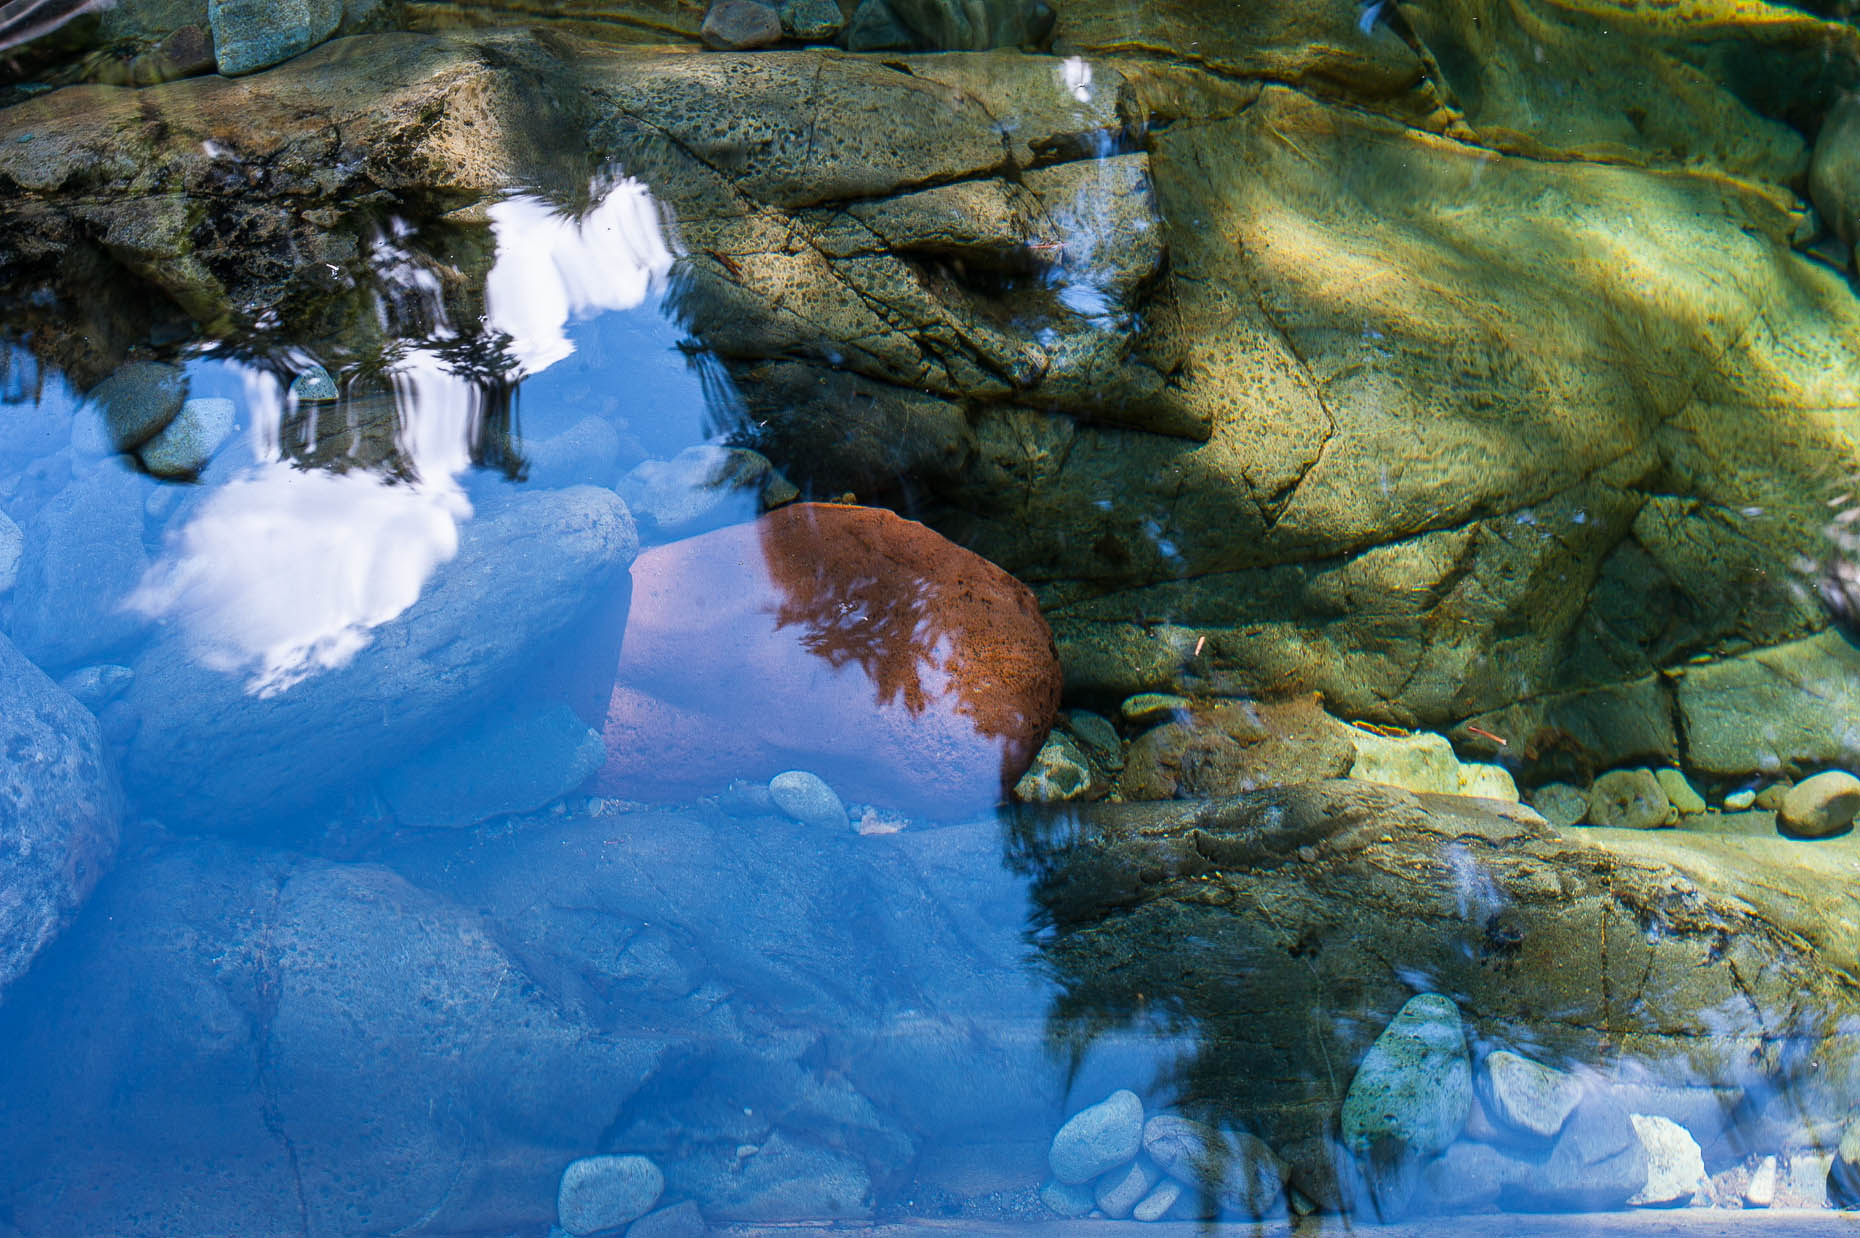 Photo of water reflection with river rocks under water.